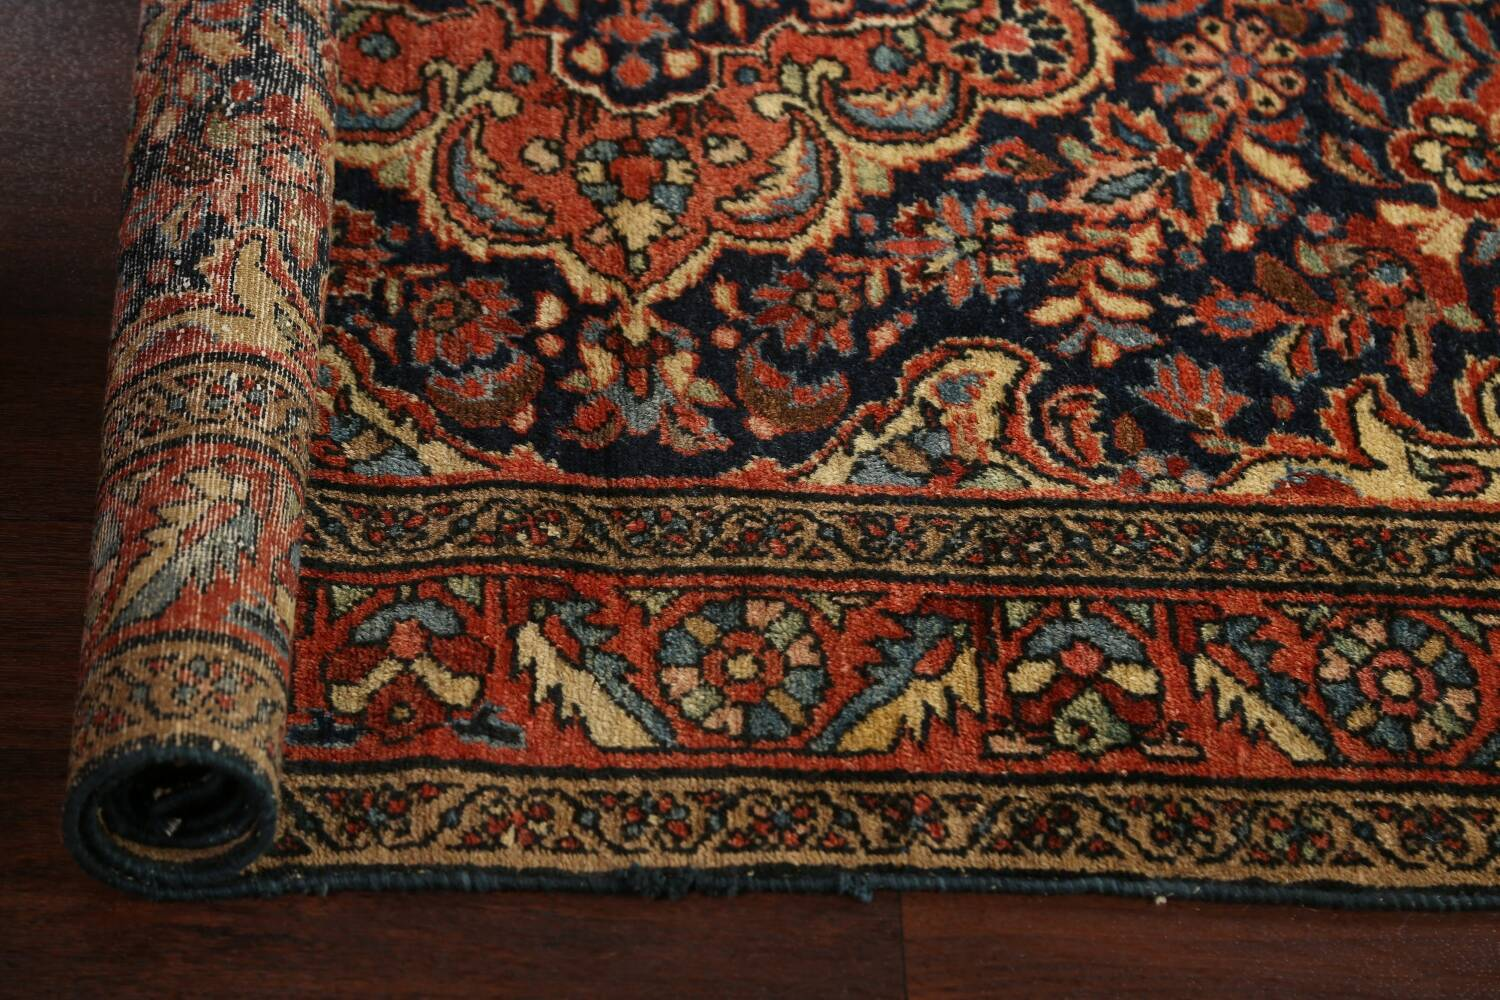 Antique Vegetable Dye Malayer Persian Area Rug 5x6 image 14